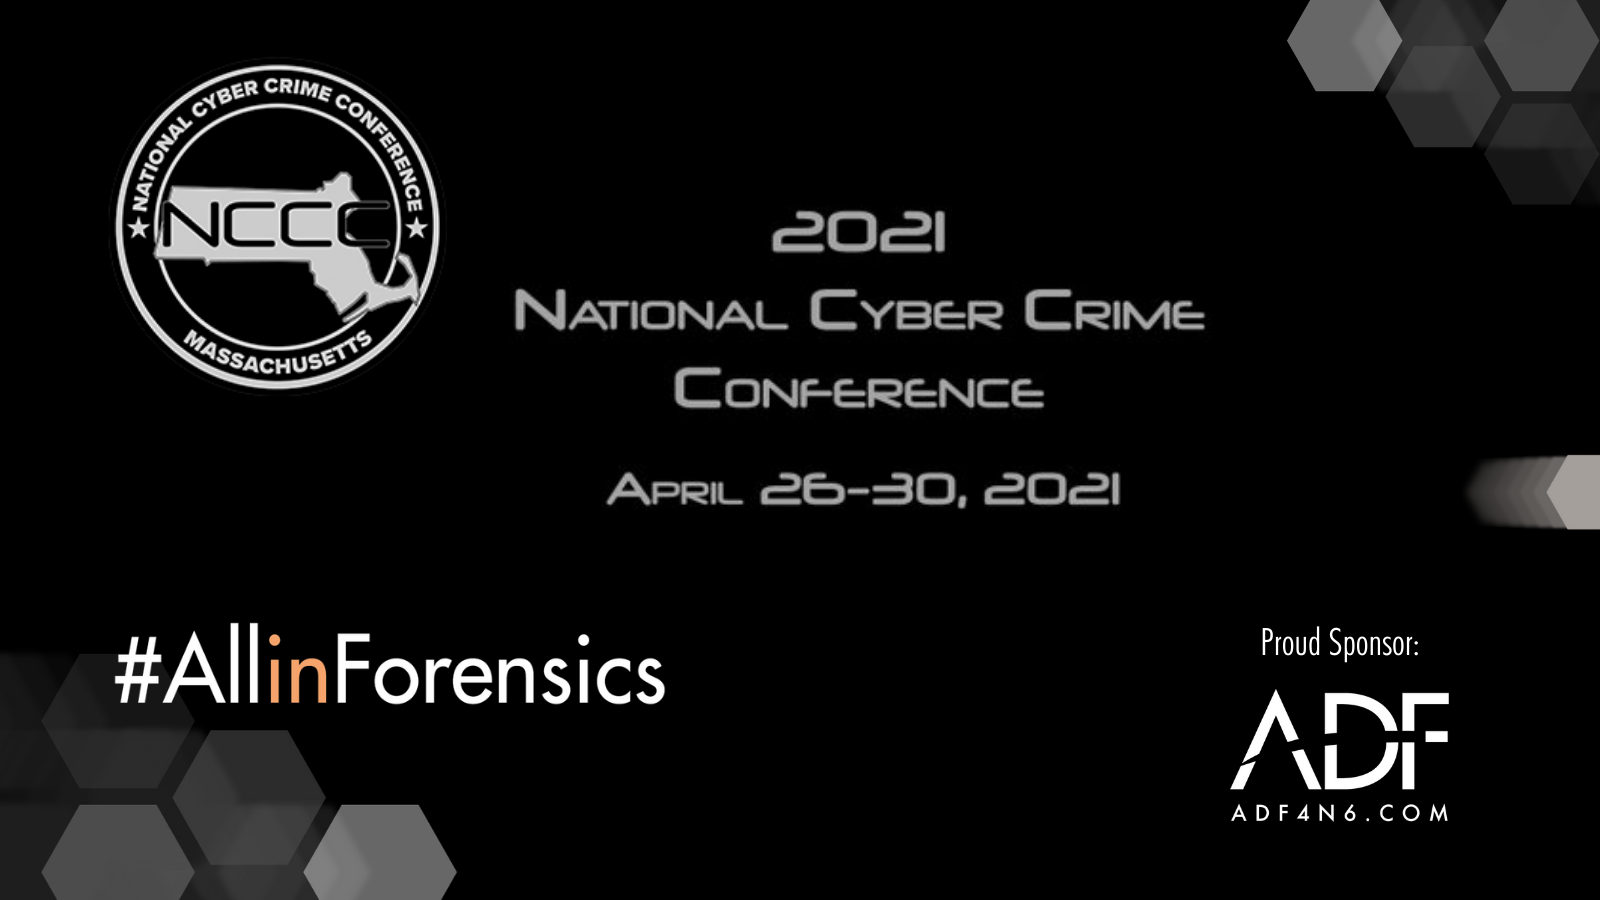 2021 National Cyber Crime Conference